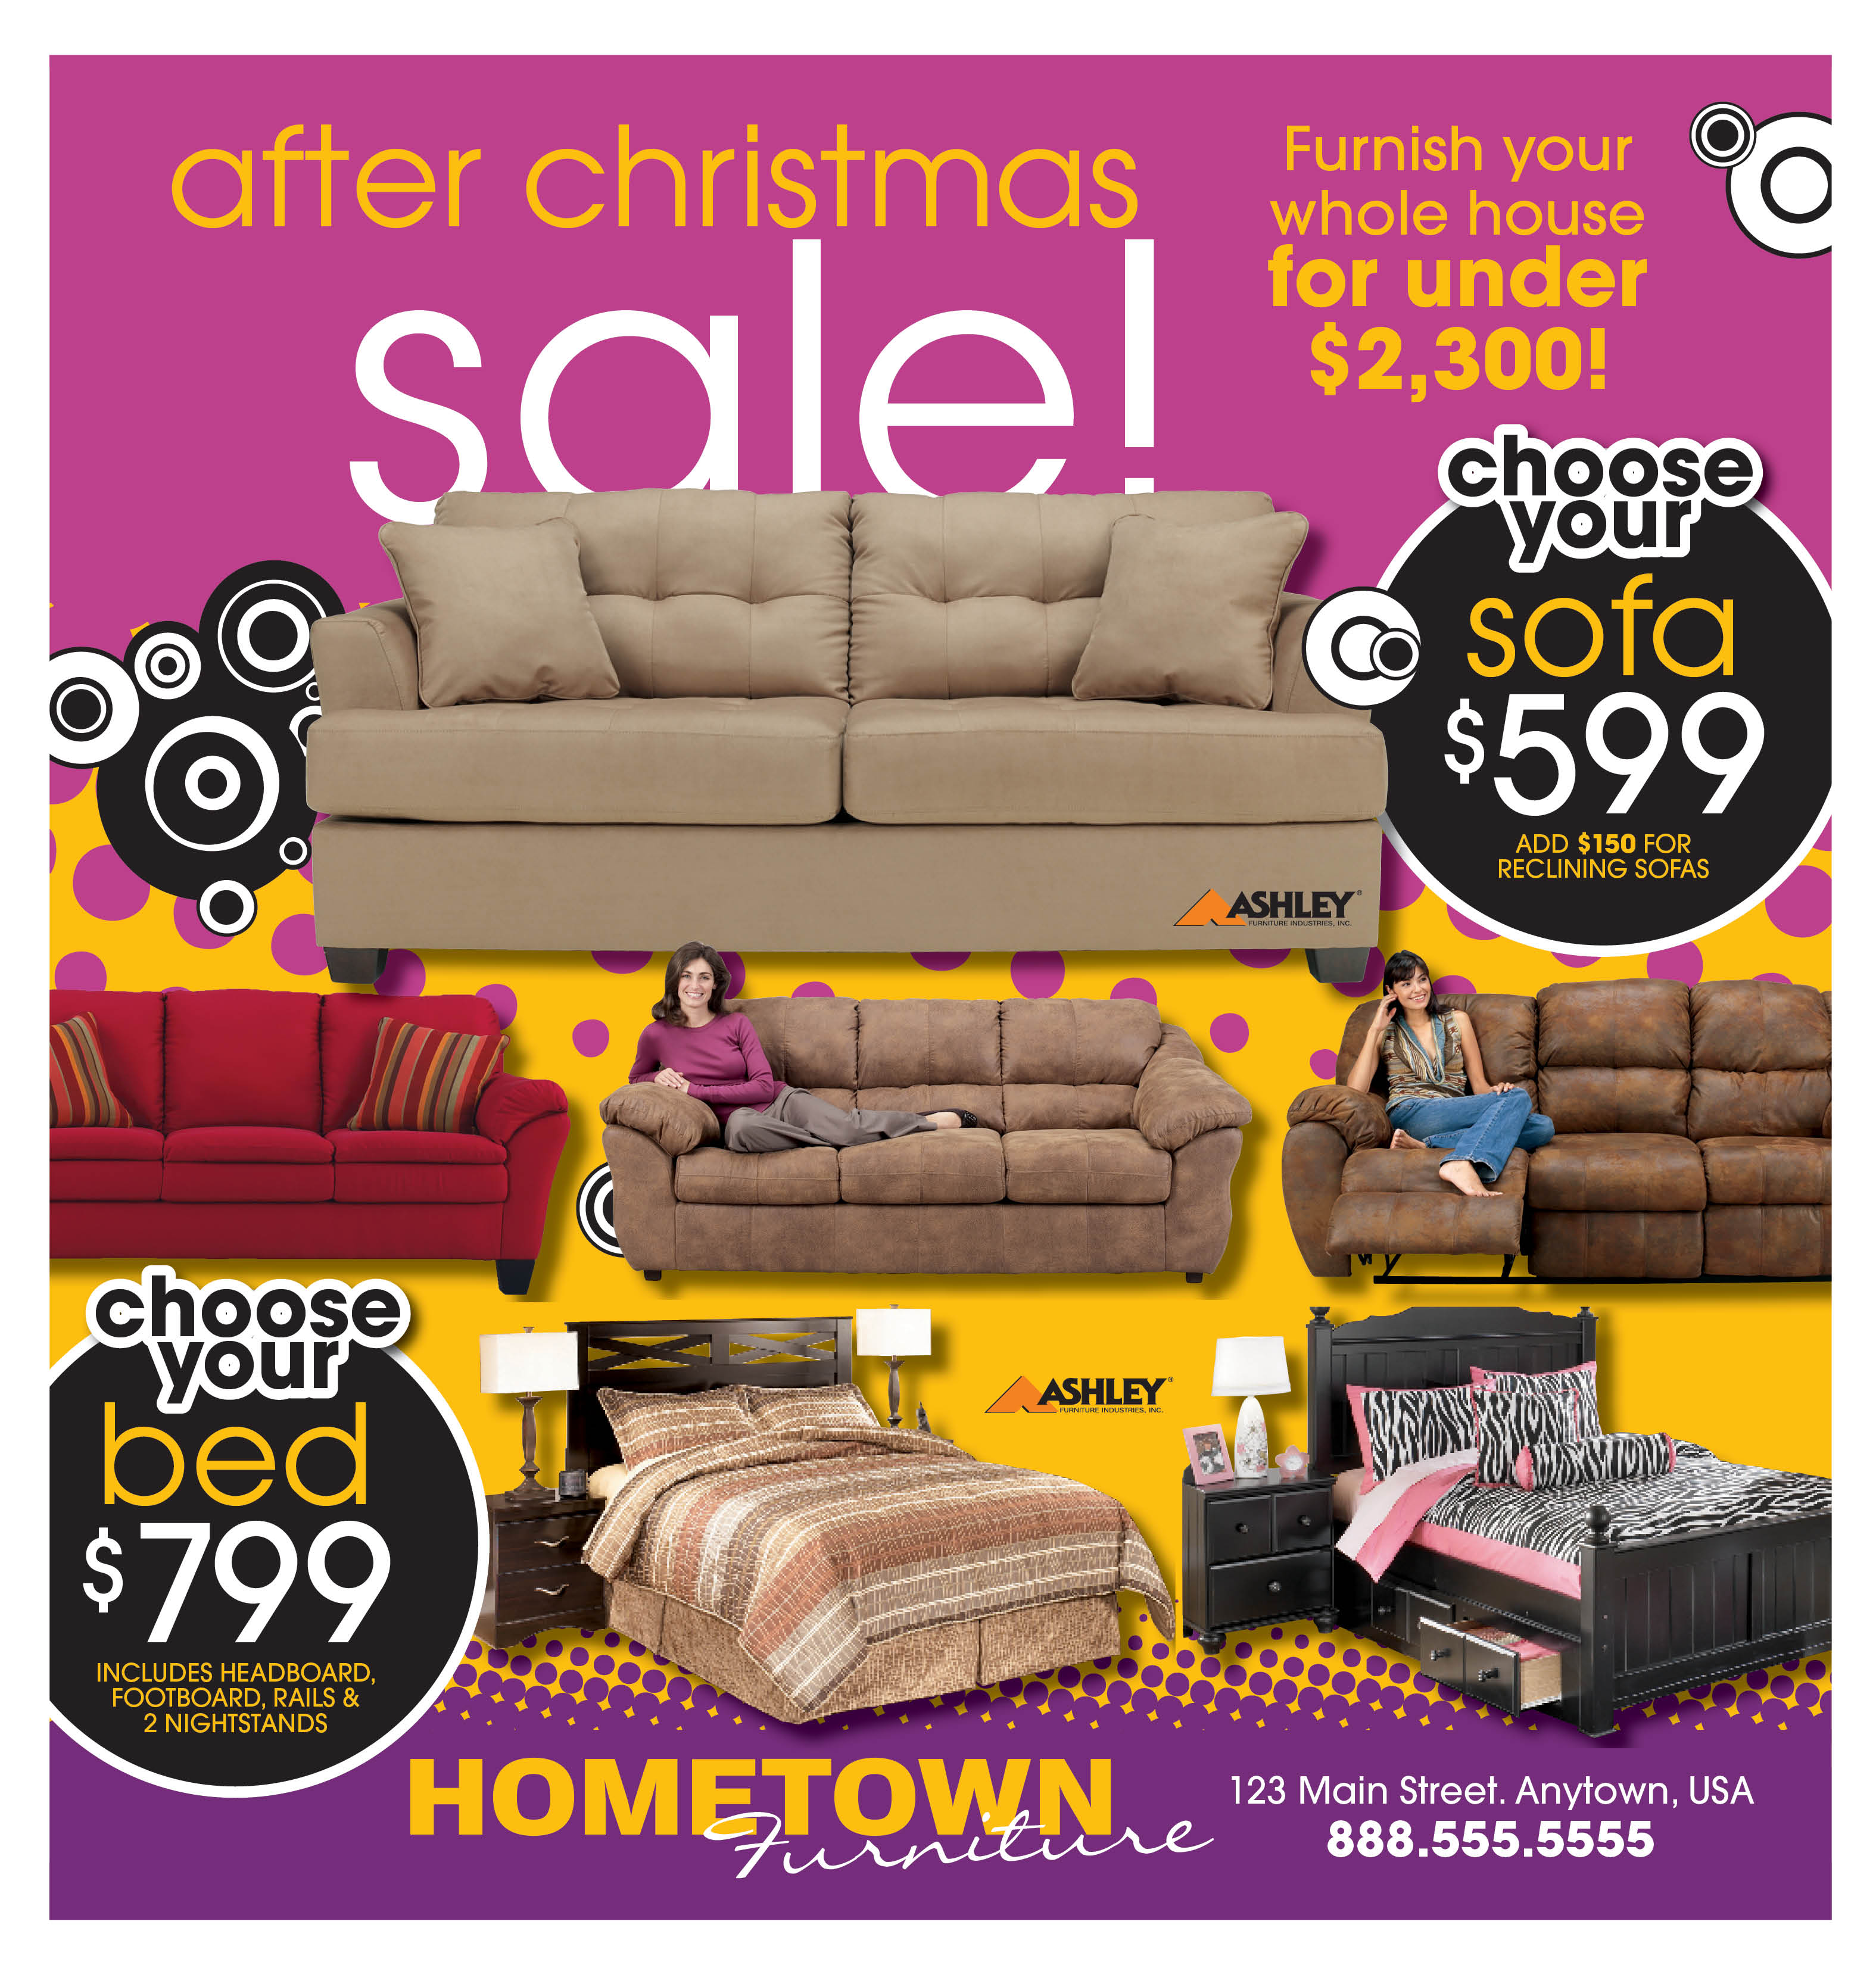 Craigslist Atlanta Furniture For Sale VA Craigslist Furniture For Sale besides 2015 Black Friday Ads Ashley ...